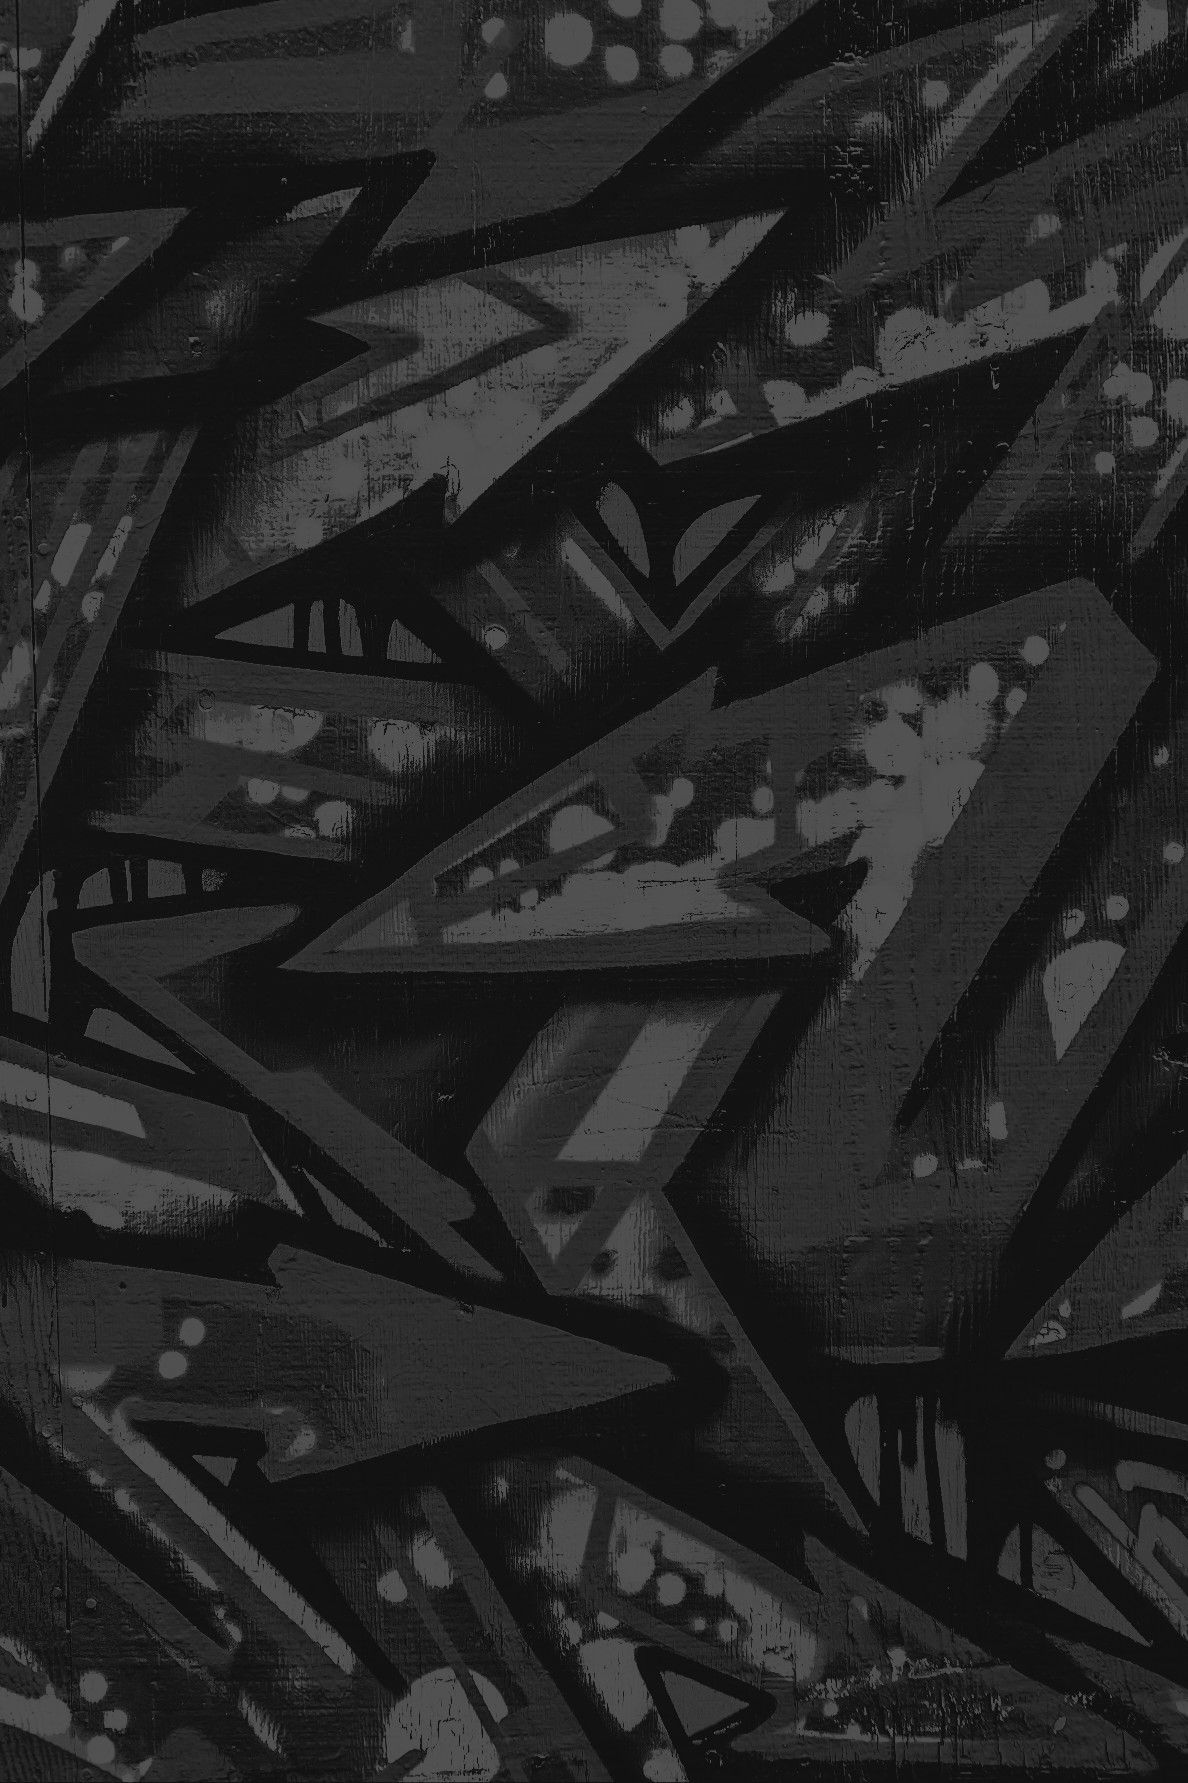 Cool From Uploaded By User Apple Iphone Backgrounds Camo Wallpaper Dark Wallpaper Camouflage Wallpaper